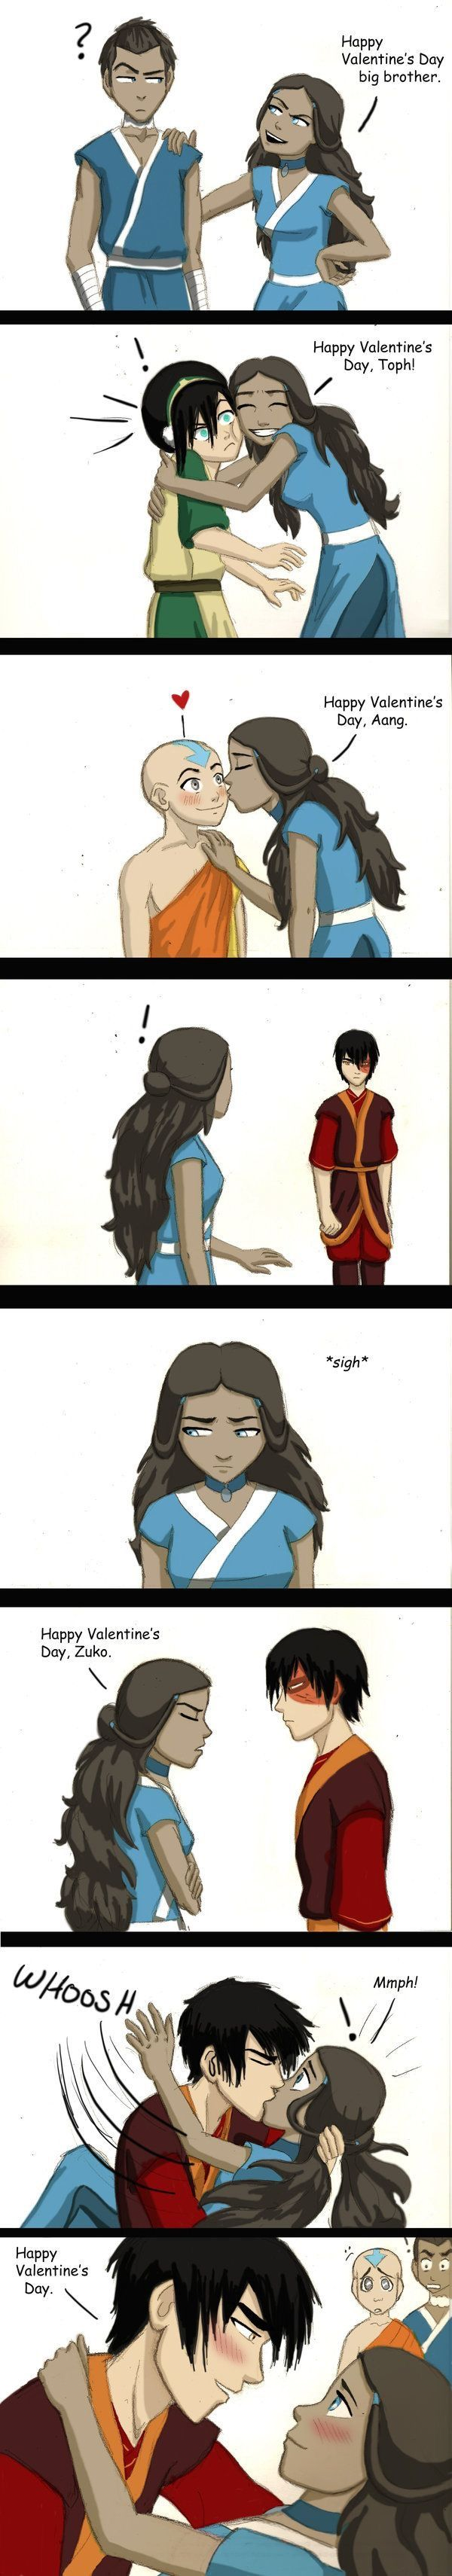 aang's face in the last panel got me, got me bad